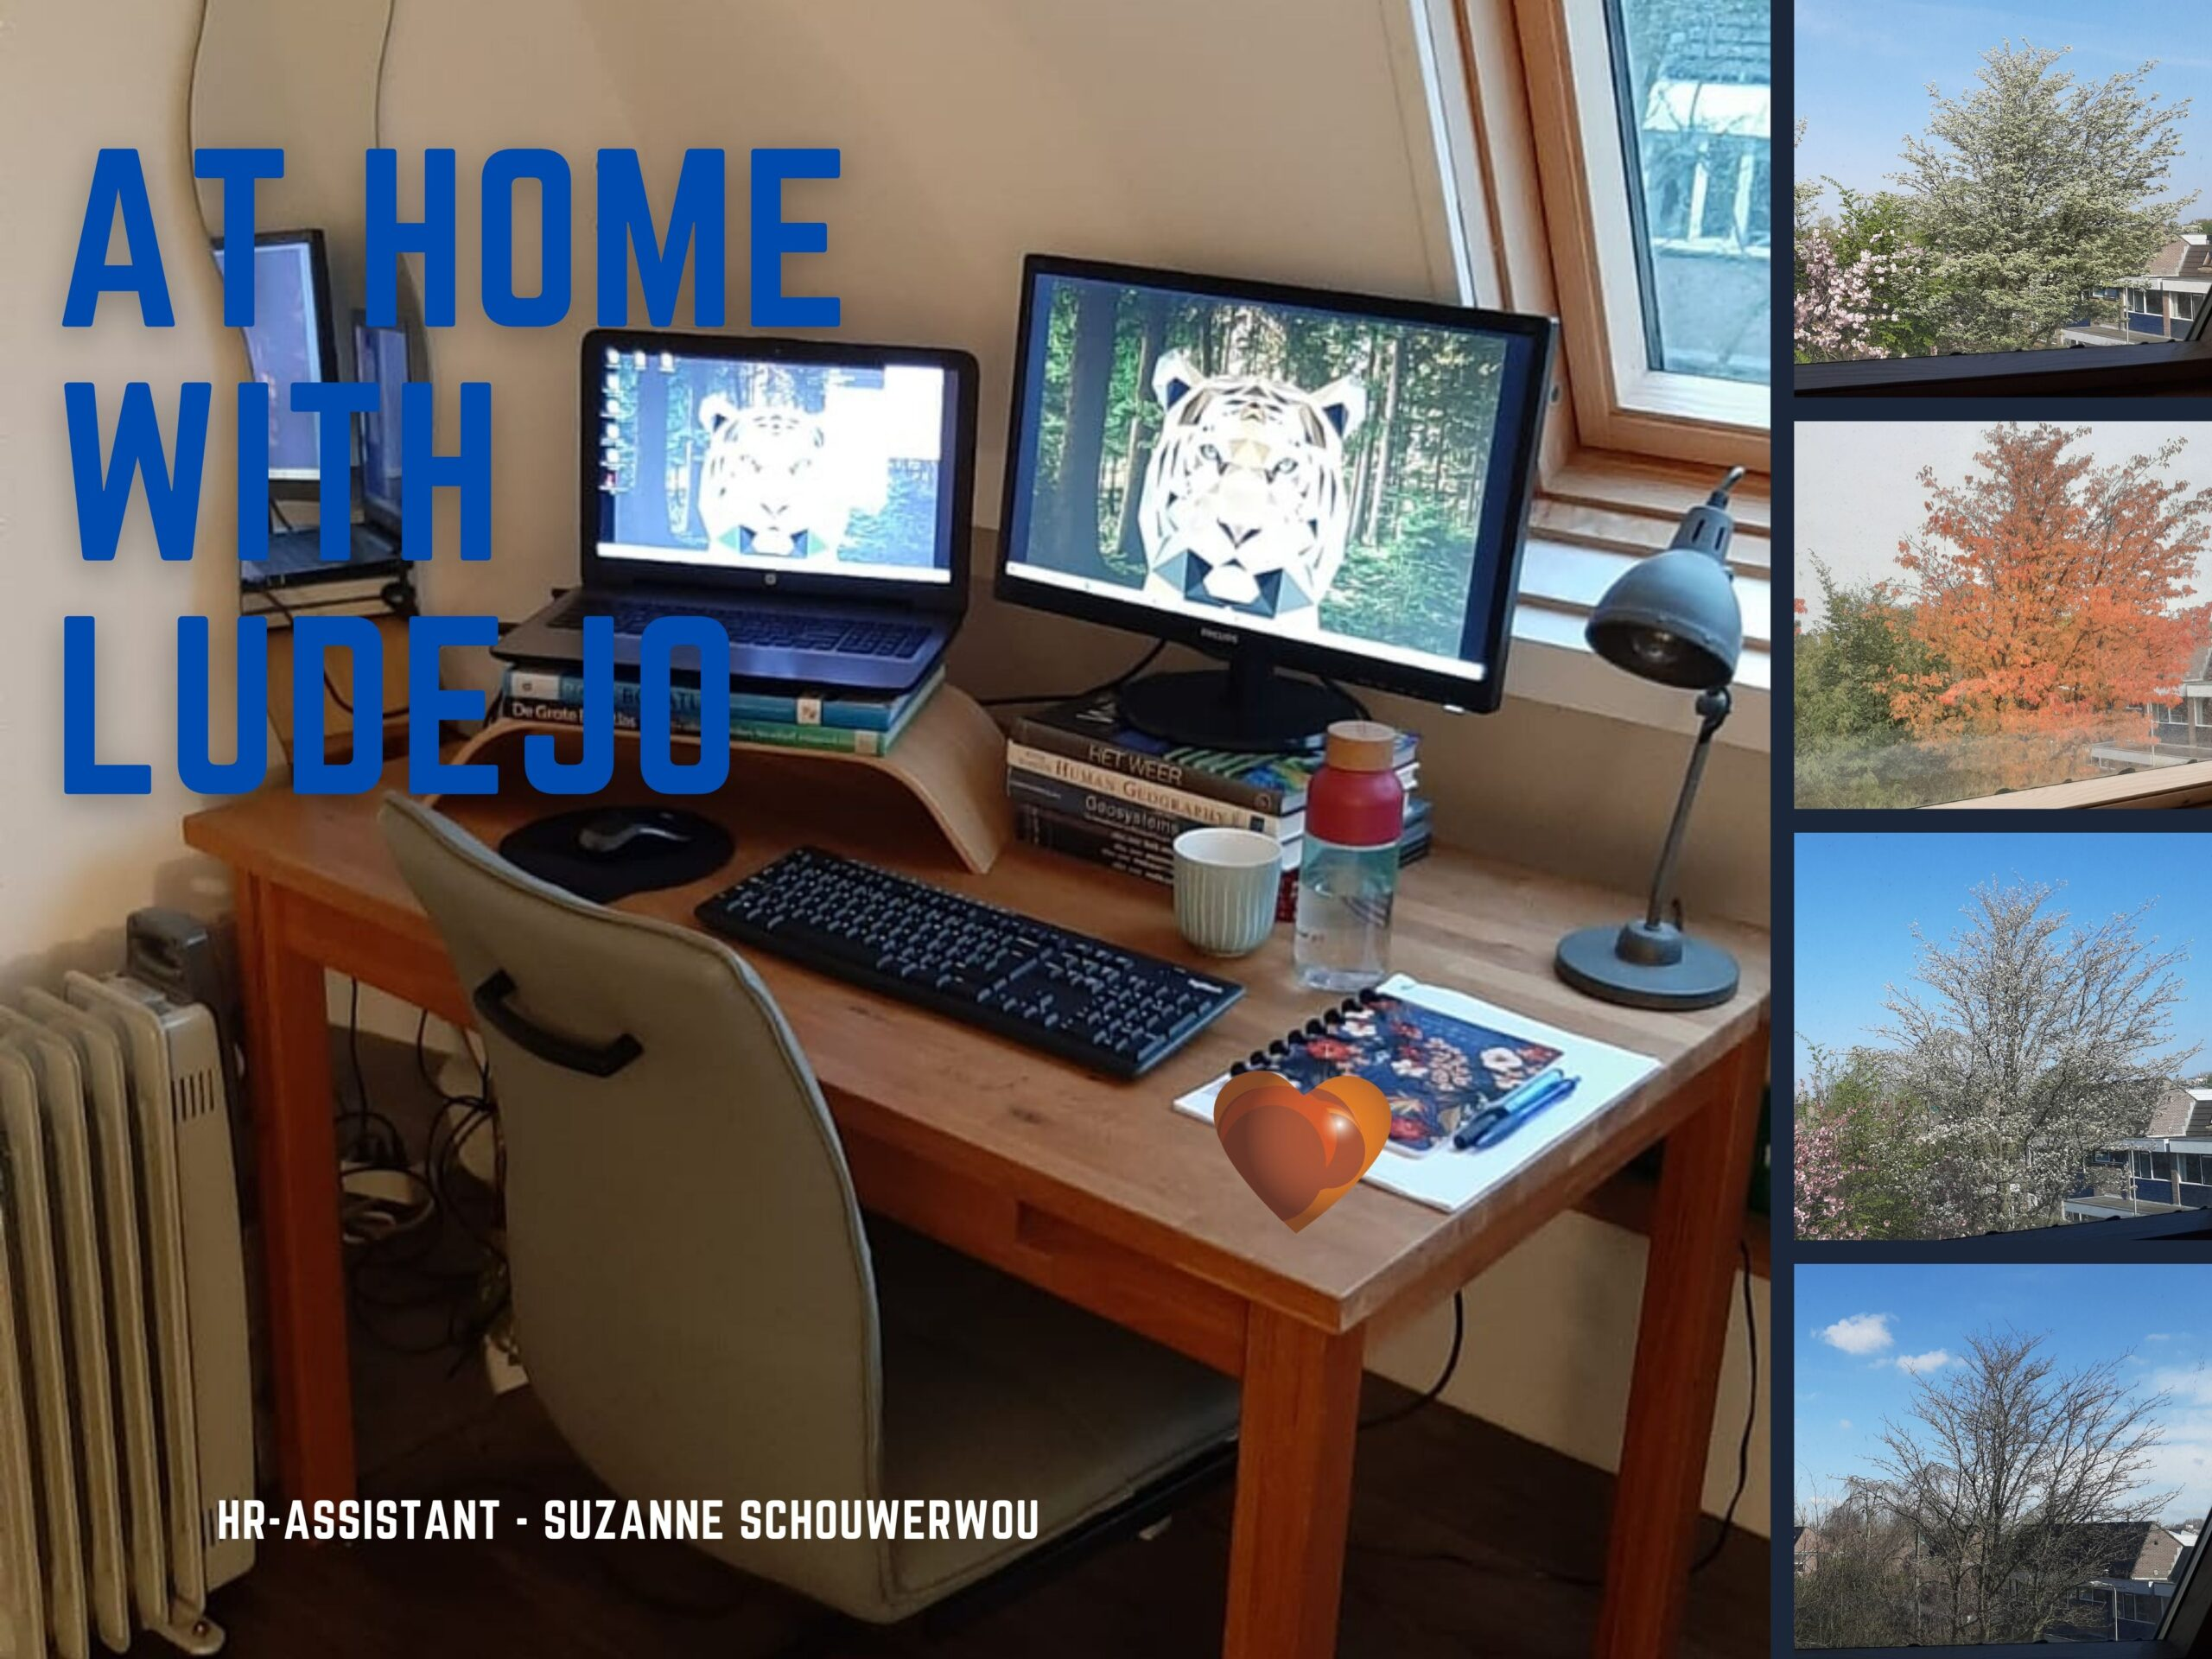 At Home with Ludejo - HR Assistant - Suzanne Schouwerwou